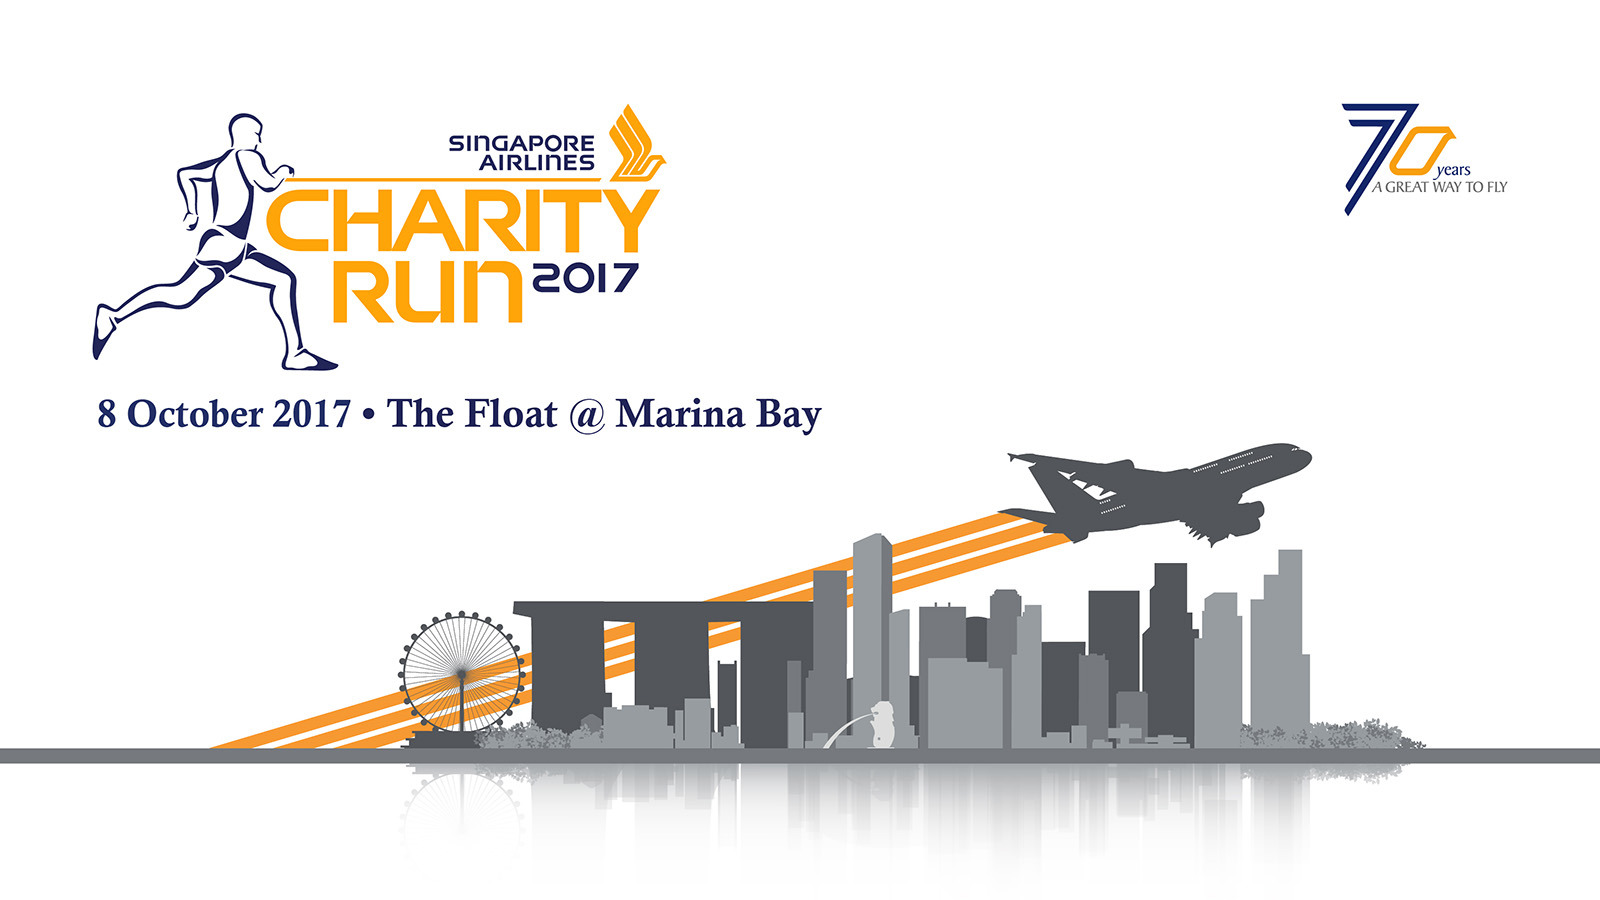 SIA Charity Run 2017 - Spacebib